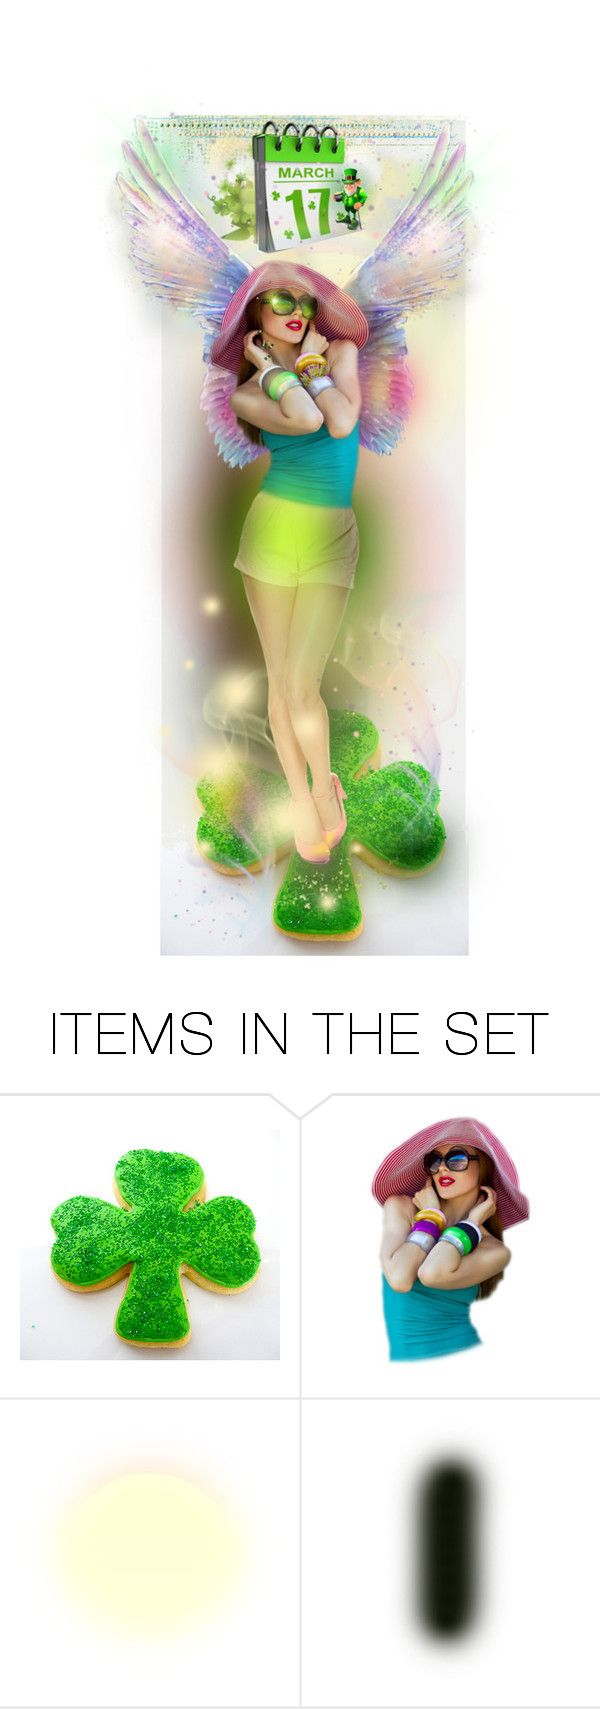 """Take These Angel Wings"" by jcmp ❤ liked on Polyvore featuring art"